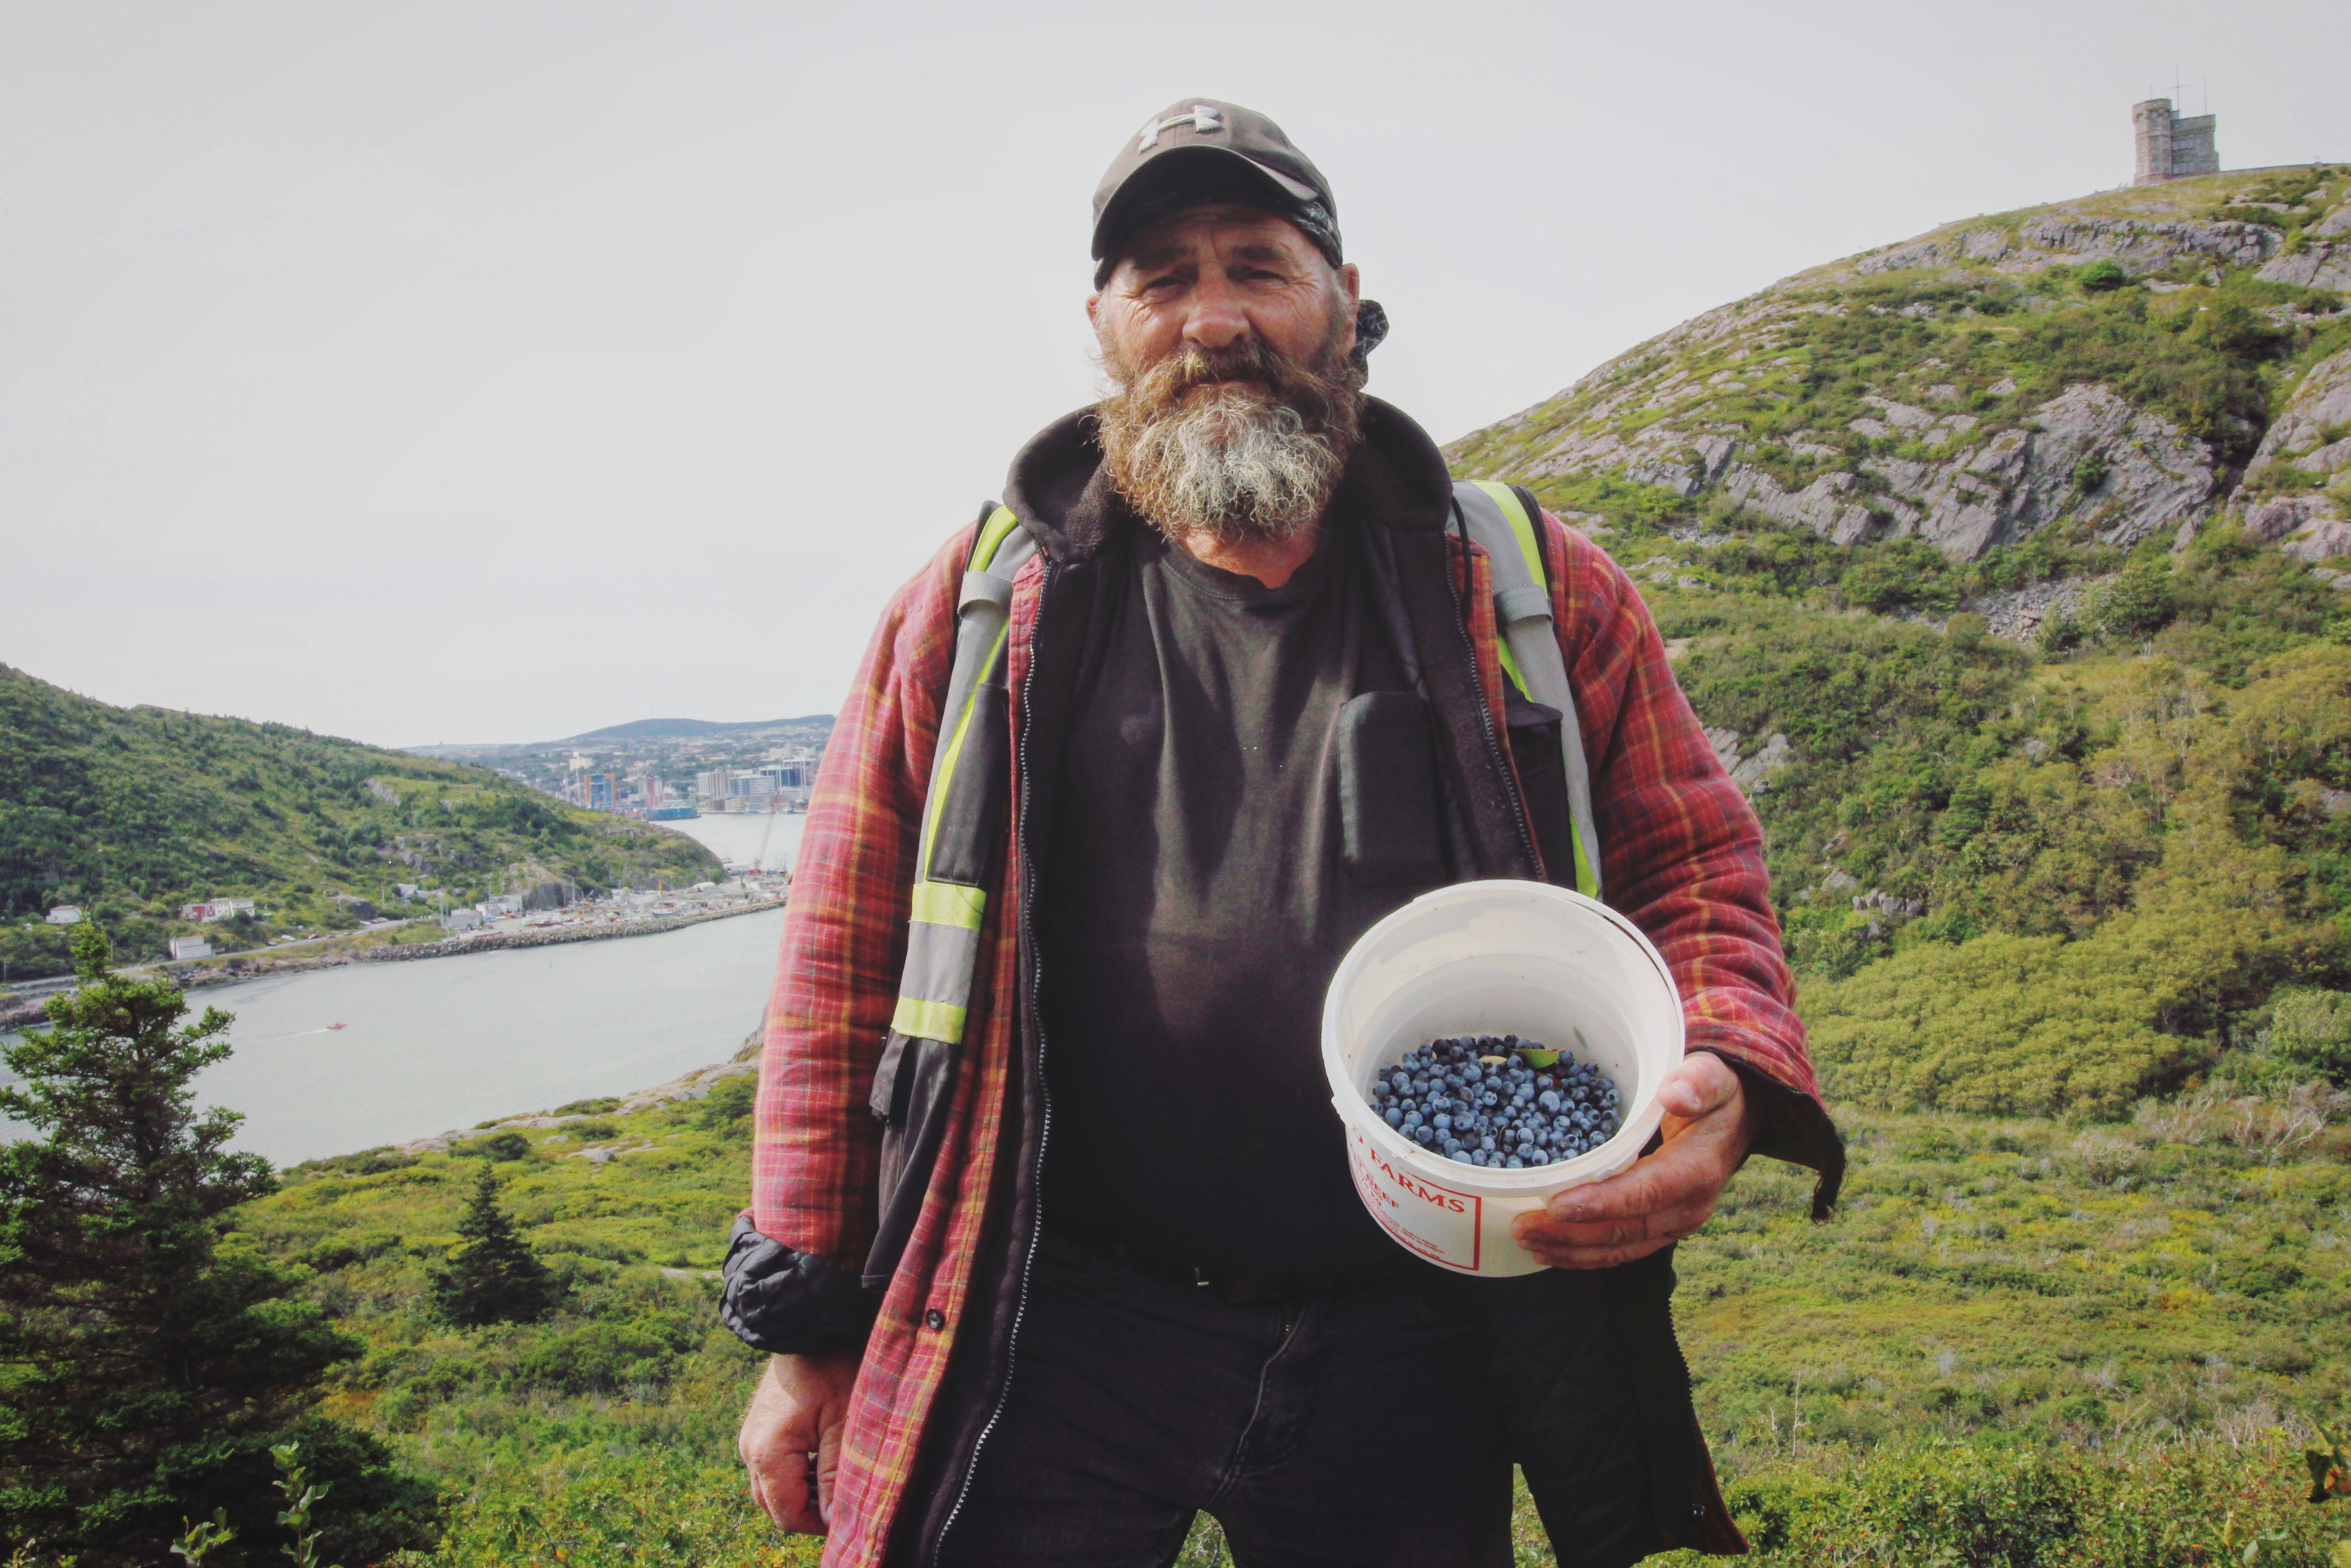 Rowbottom, originally from St. Anthony, calls St. John's the blueberry capital of the island. (Gavin Simms/CBC)